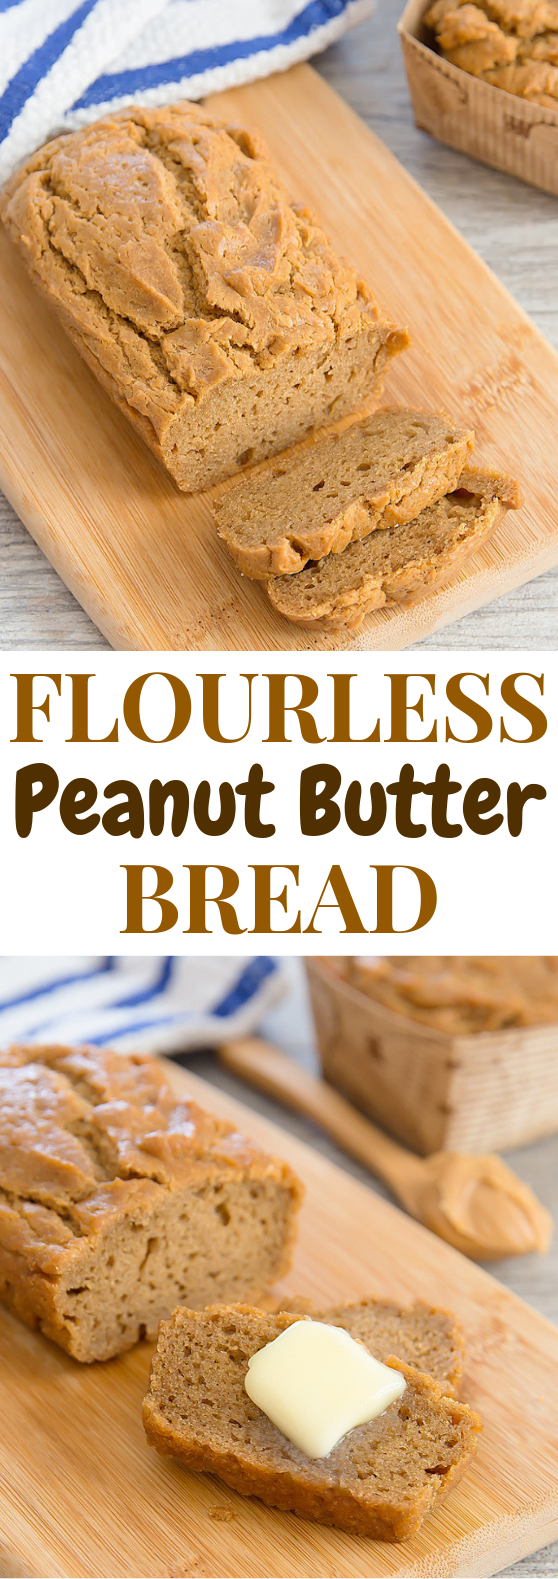 FLOURLESS PEANUT BUTTER BREAD #lowcarb #HealthyFood